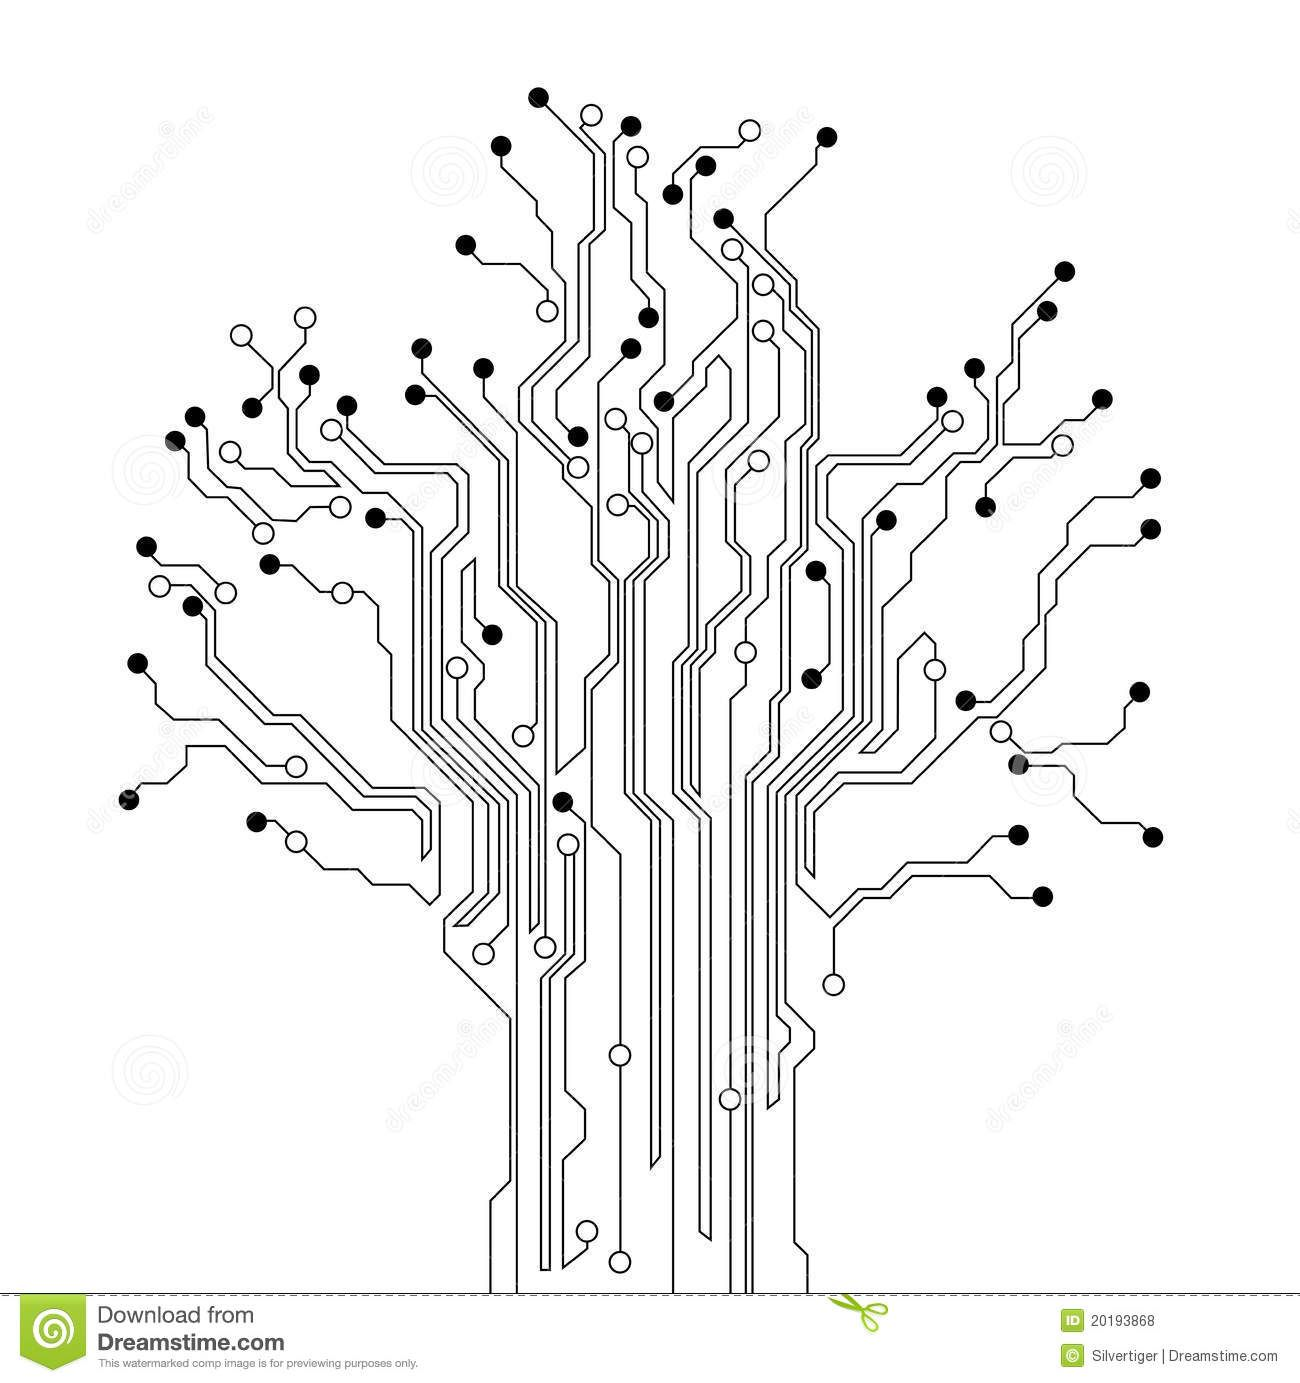 printed circuit board tree stock vector  illustration of